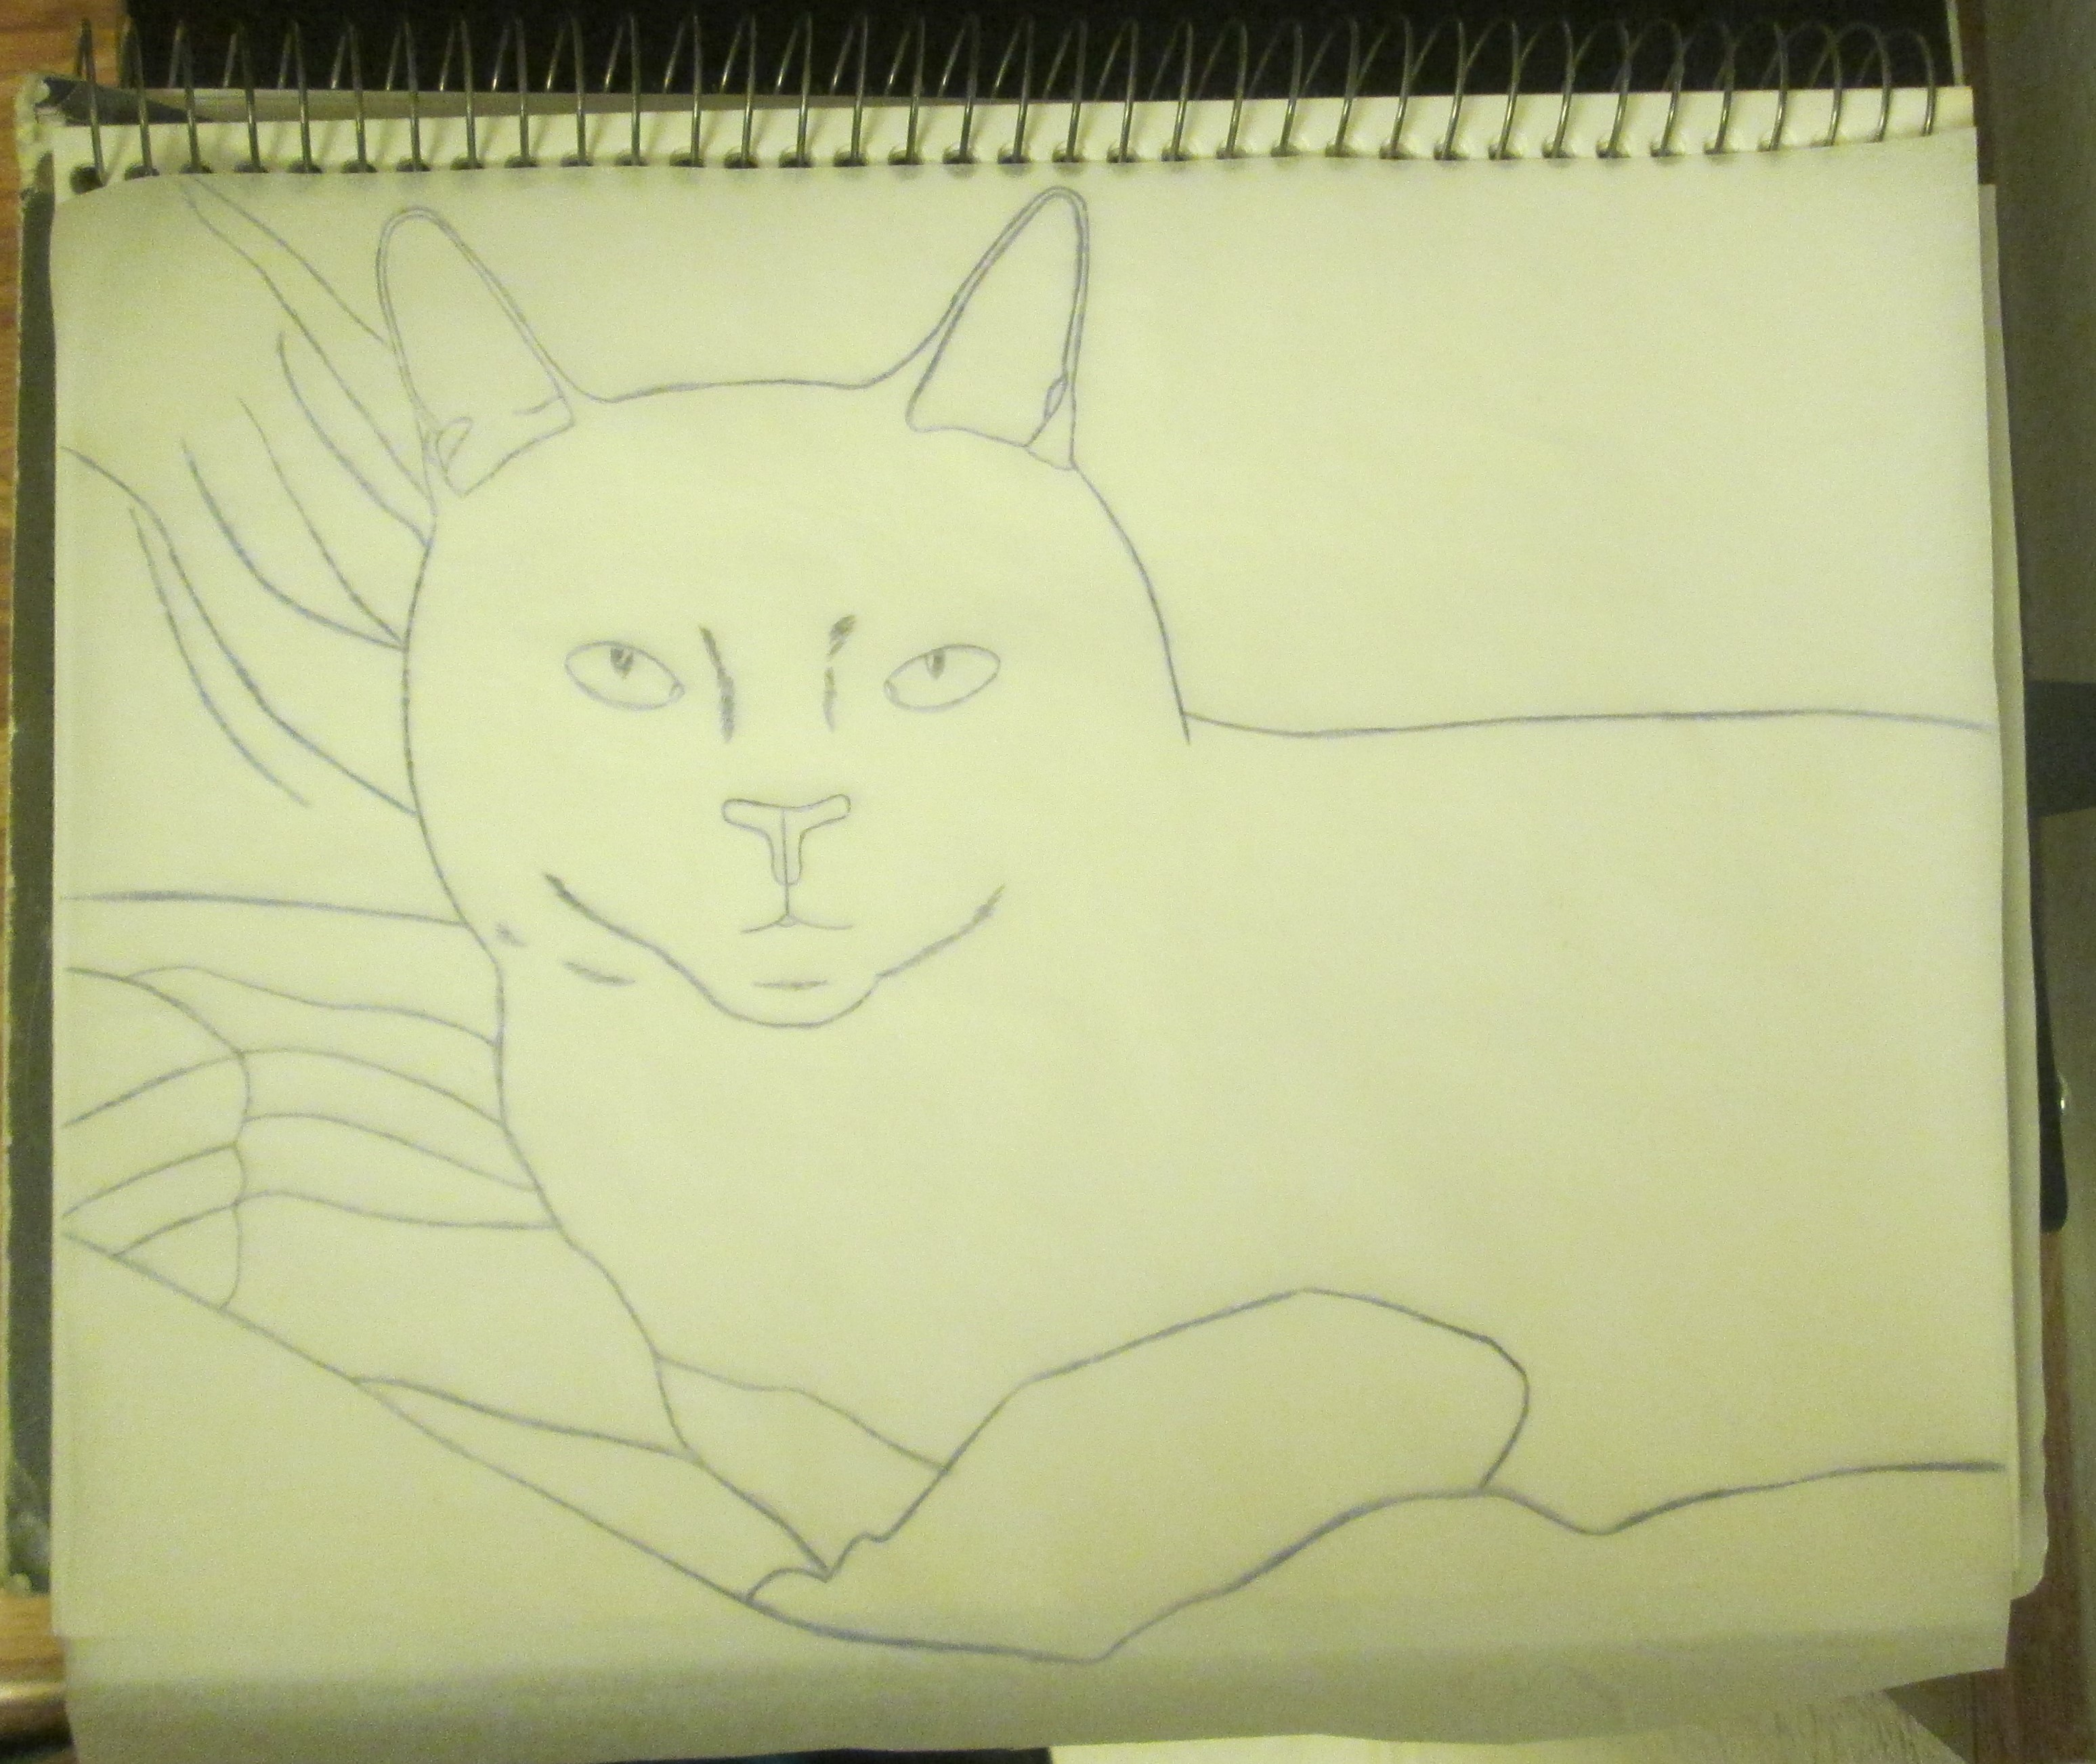 Here I have finished tracing over the rough draft sketch of the cat.